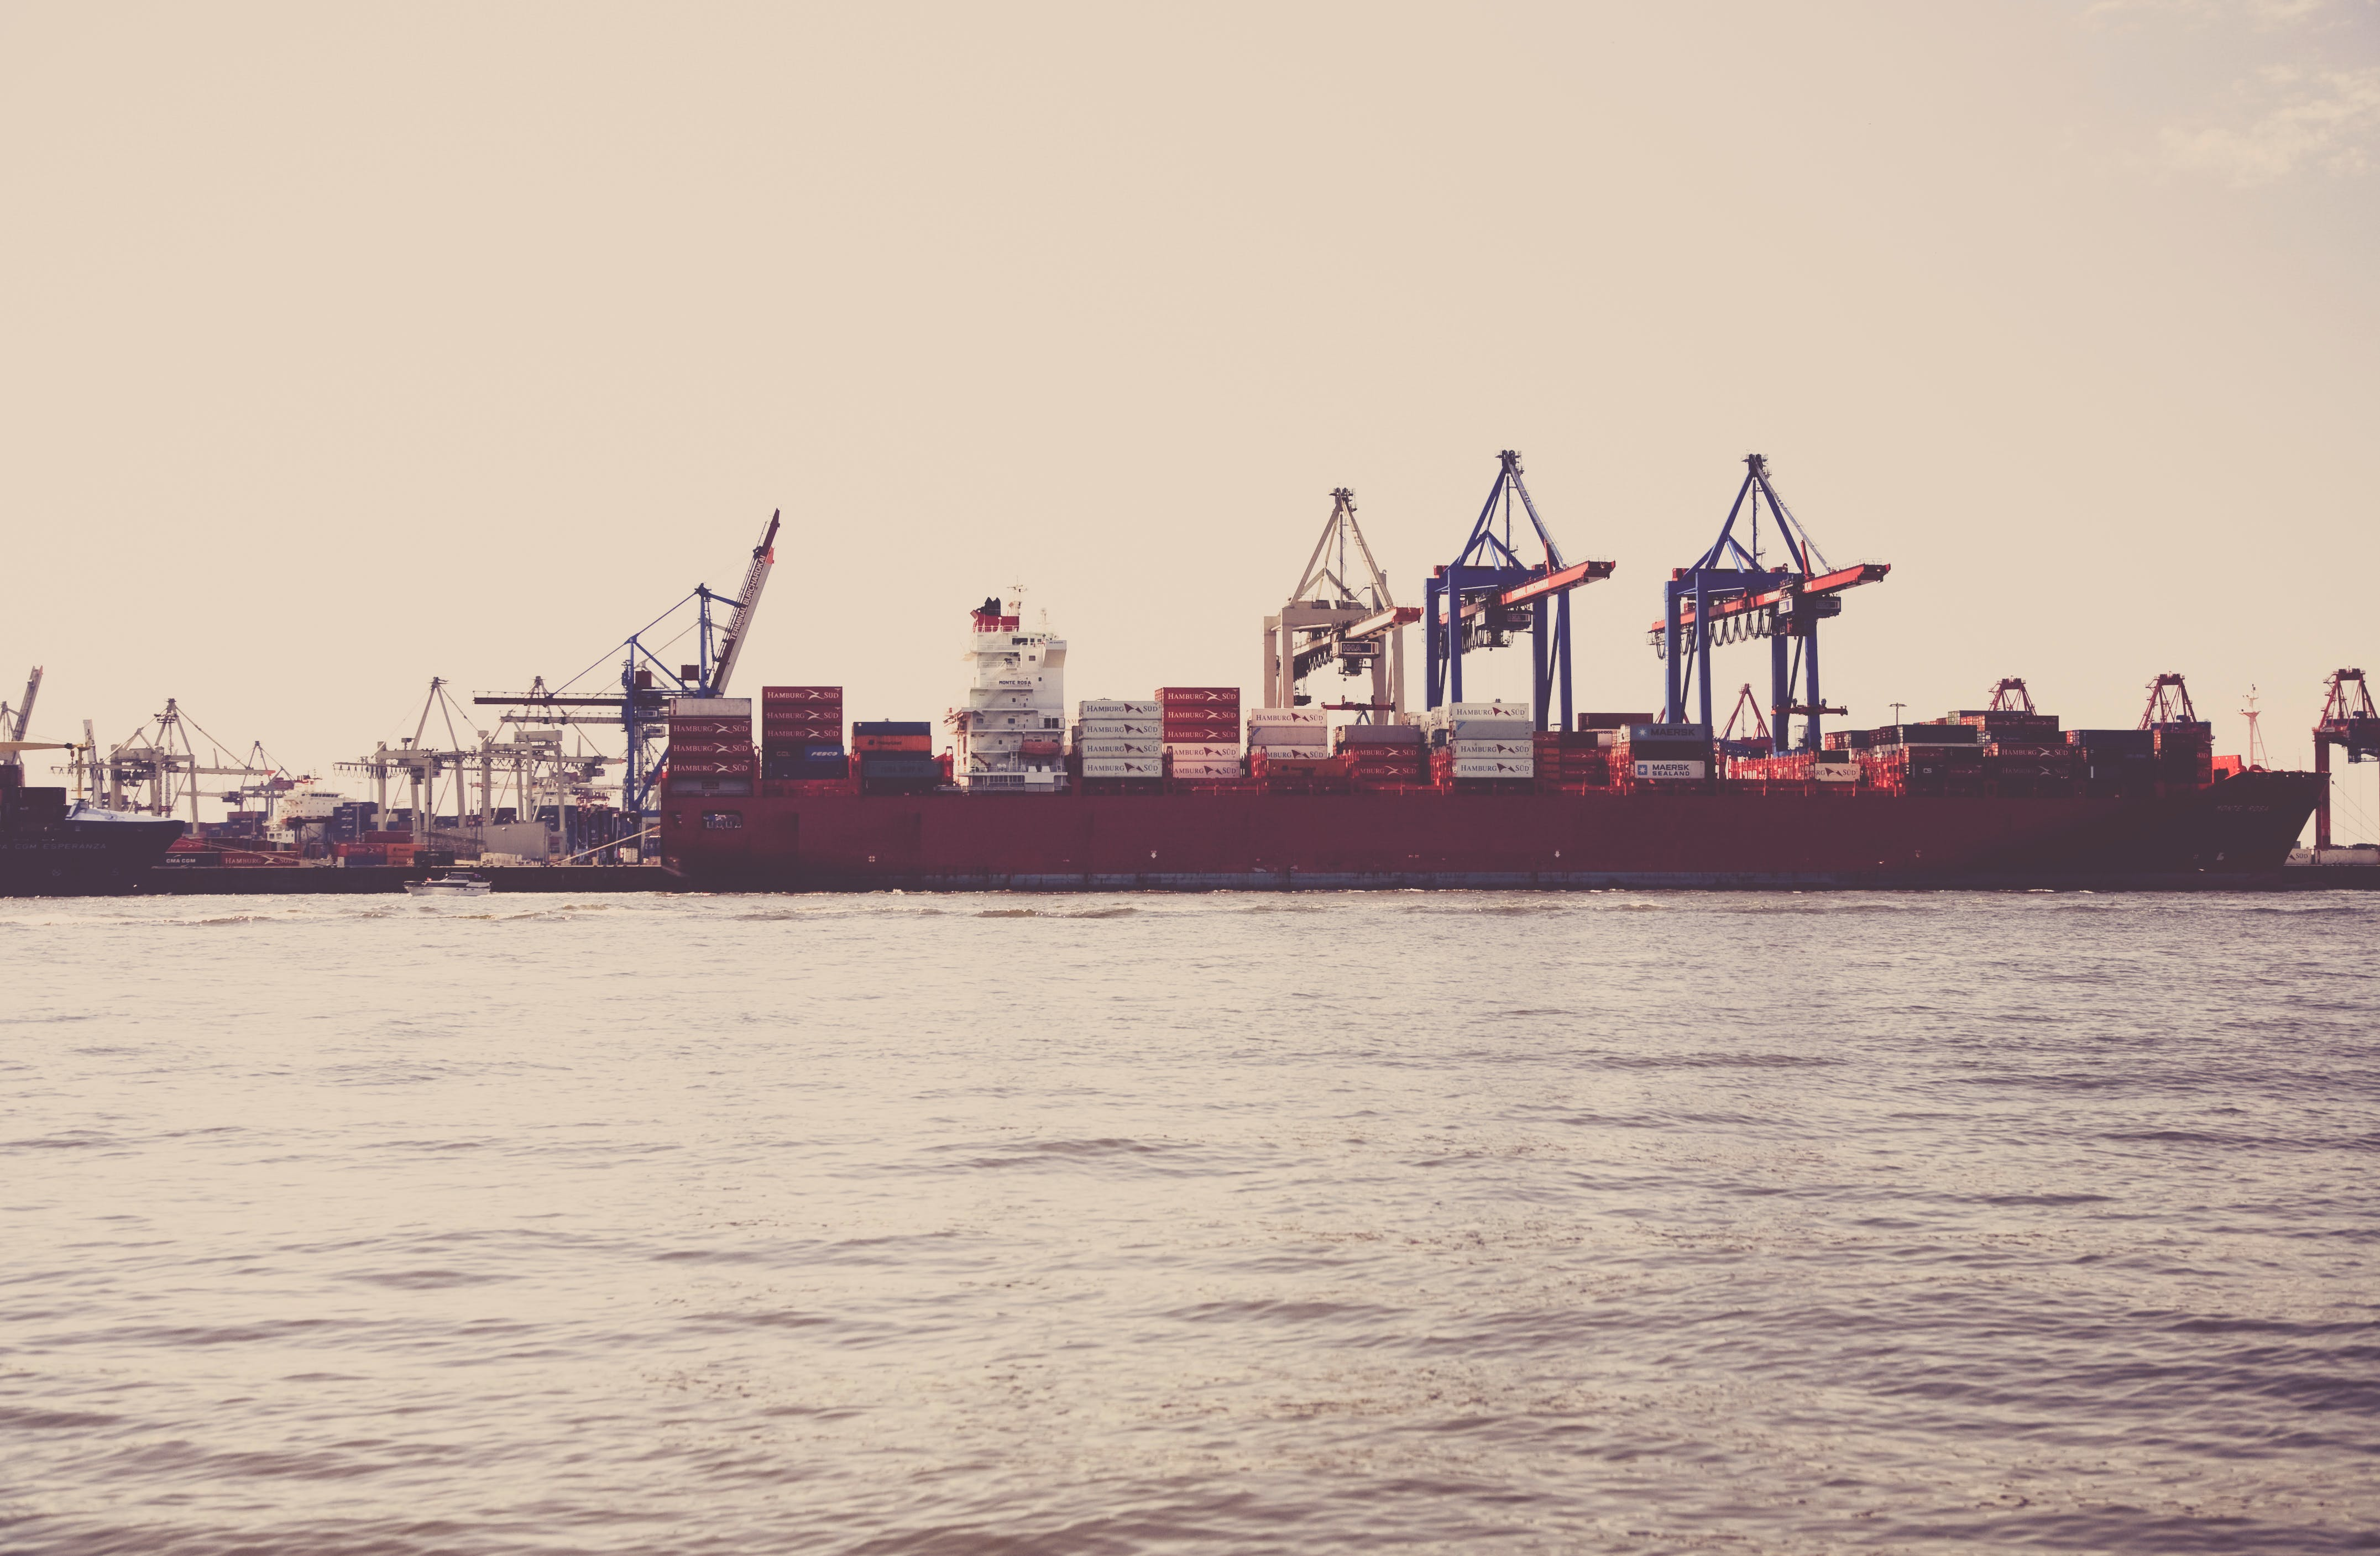 Red Ship on the Sea during Daytime